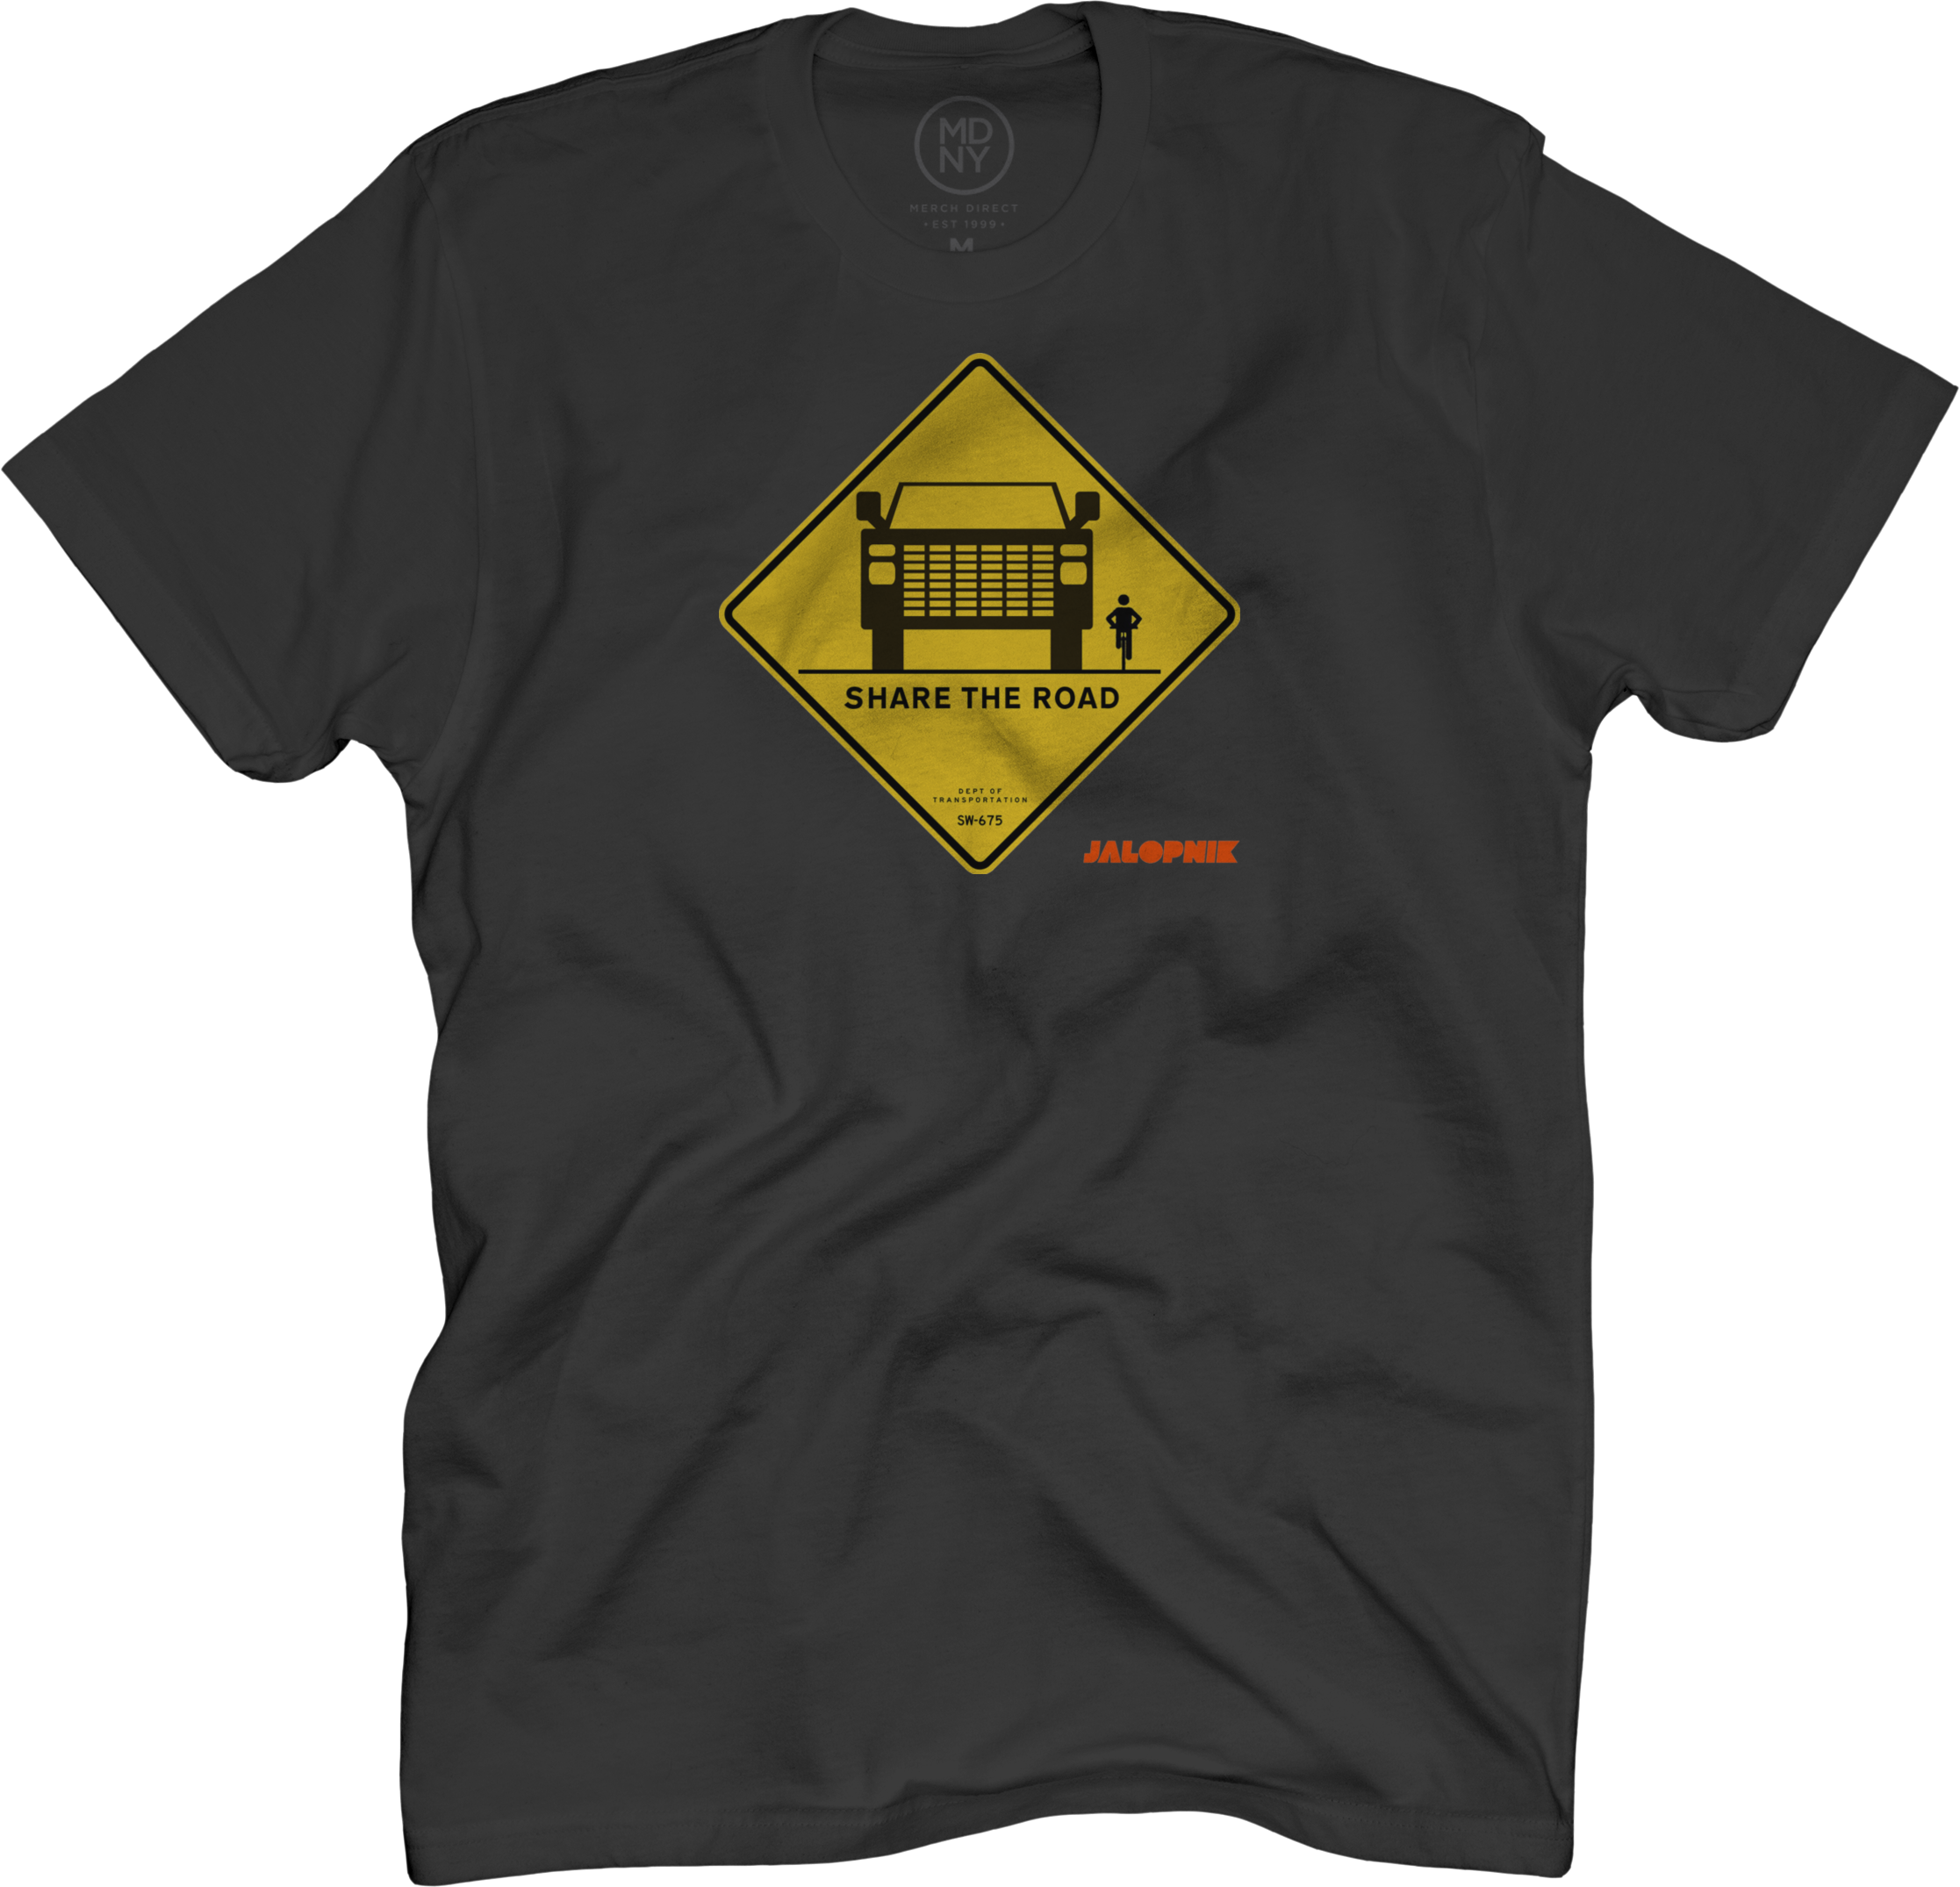 Share The Road Black T-Shirt